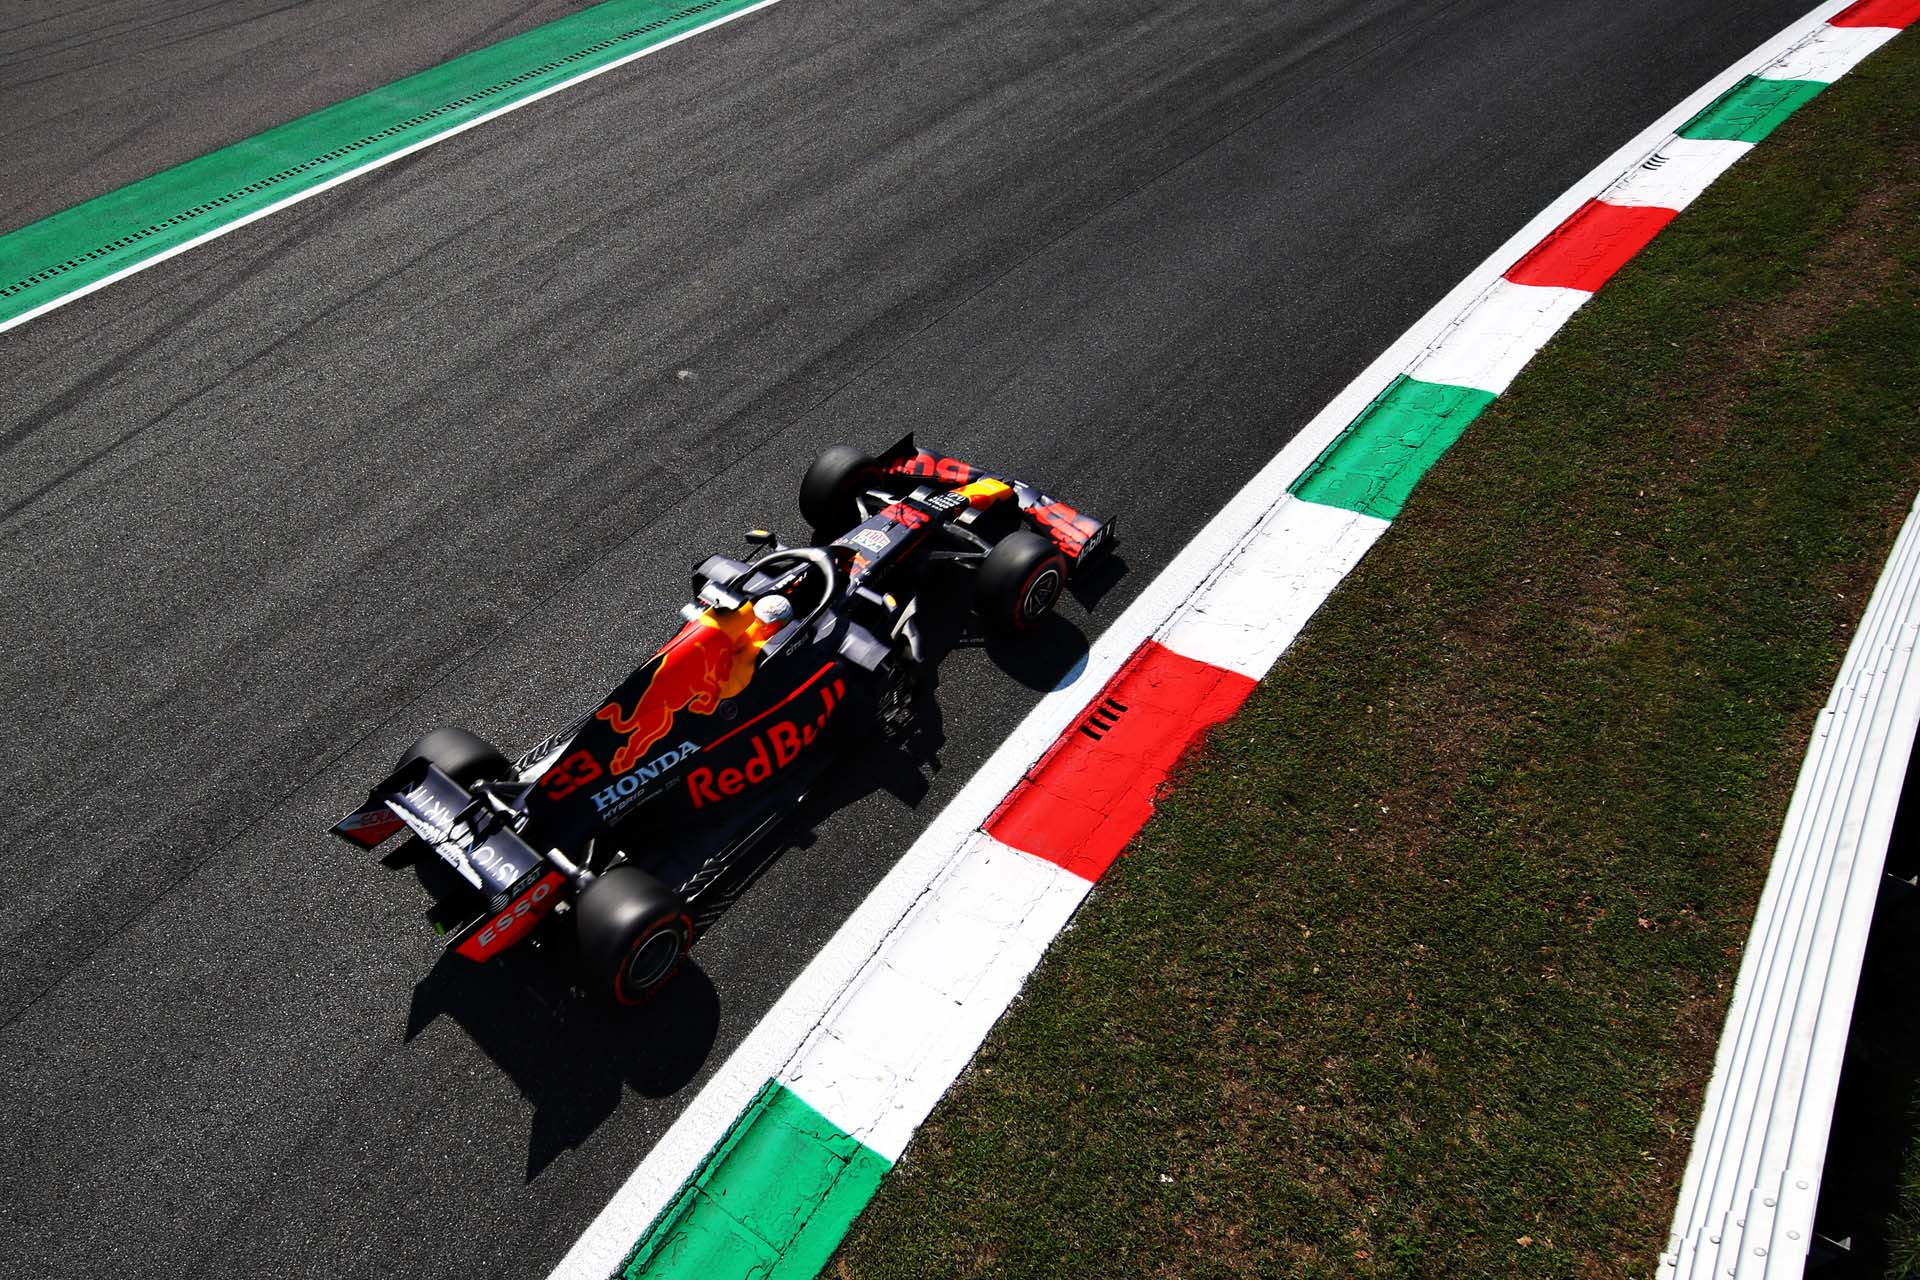 F1 Grand Prix of Italy - Final Practice